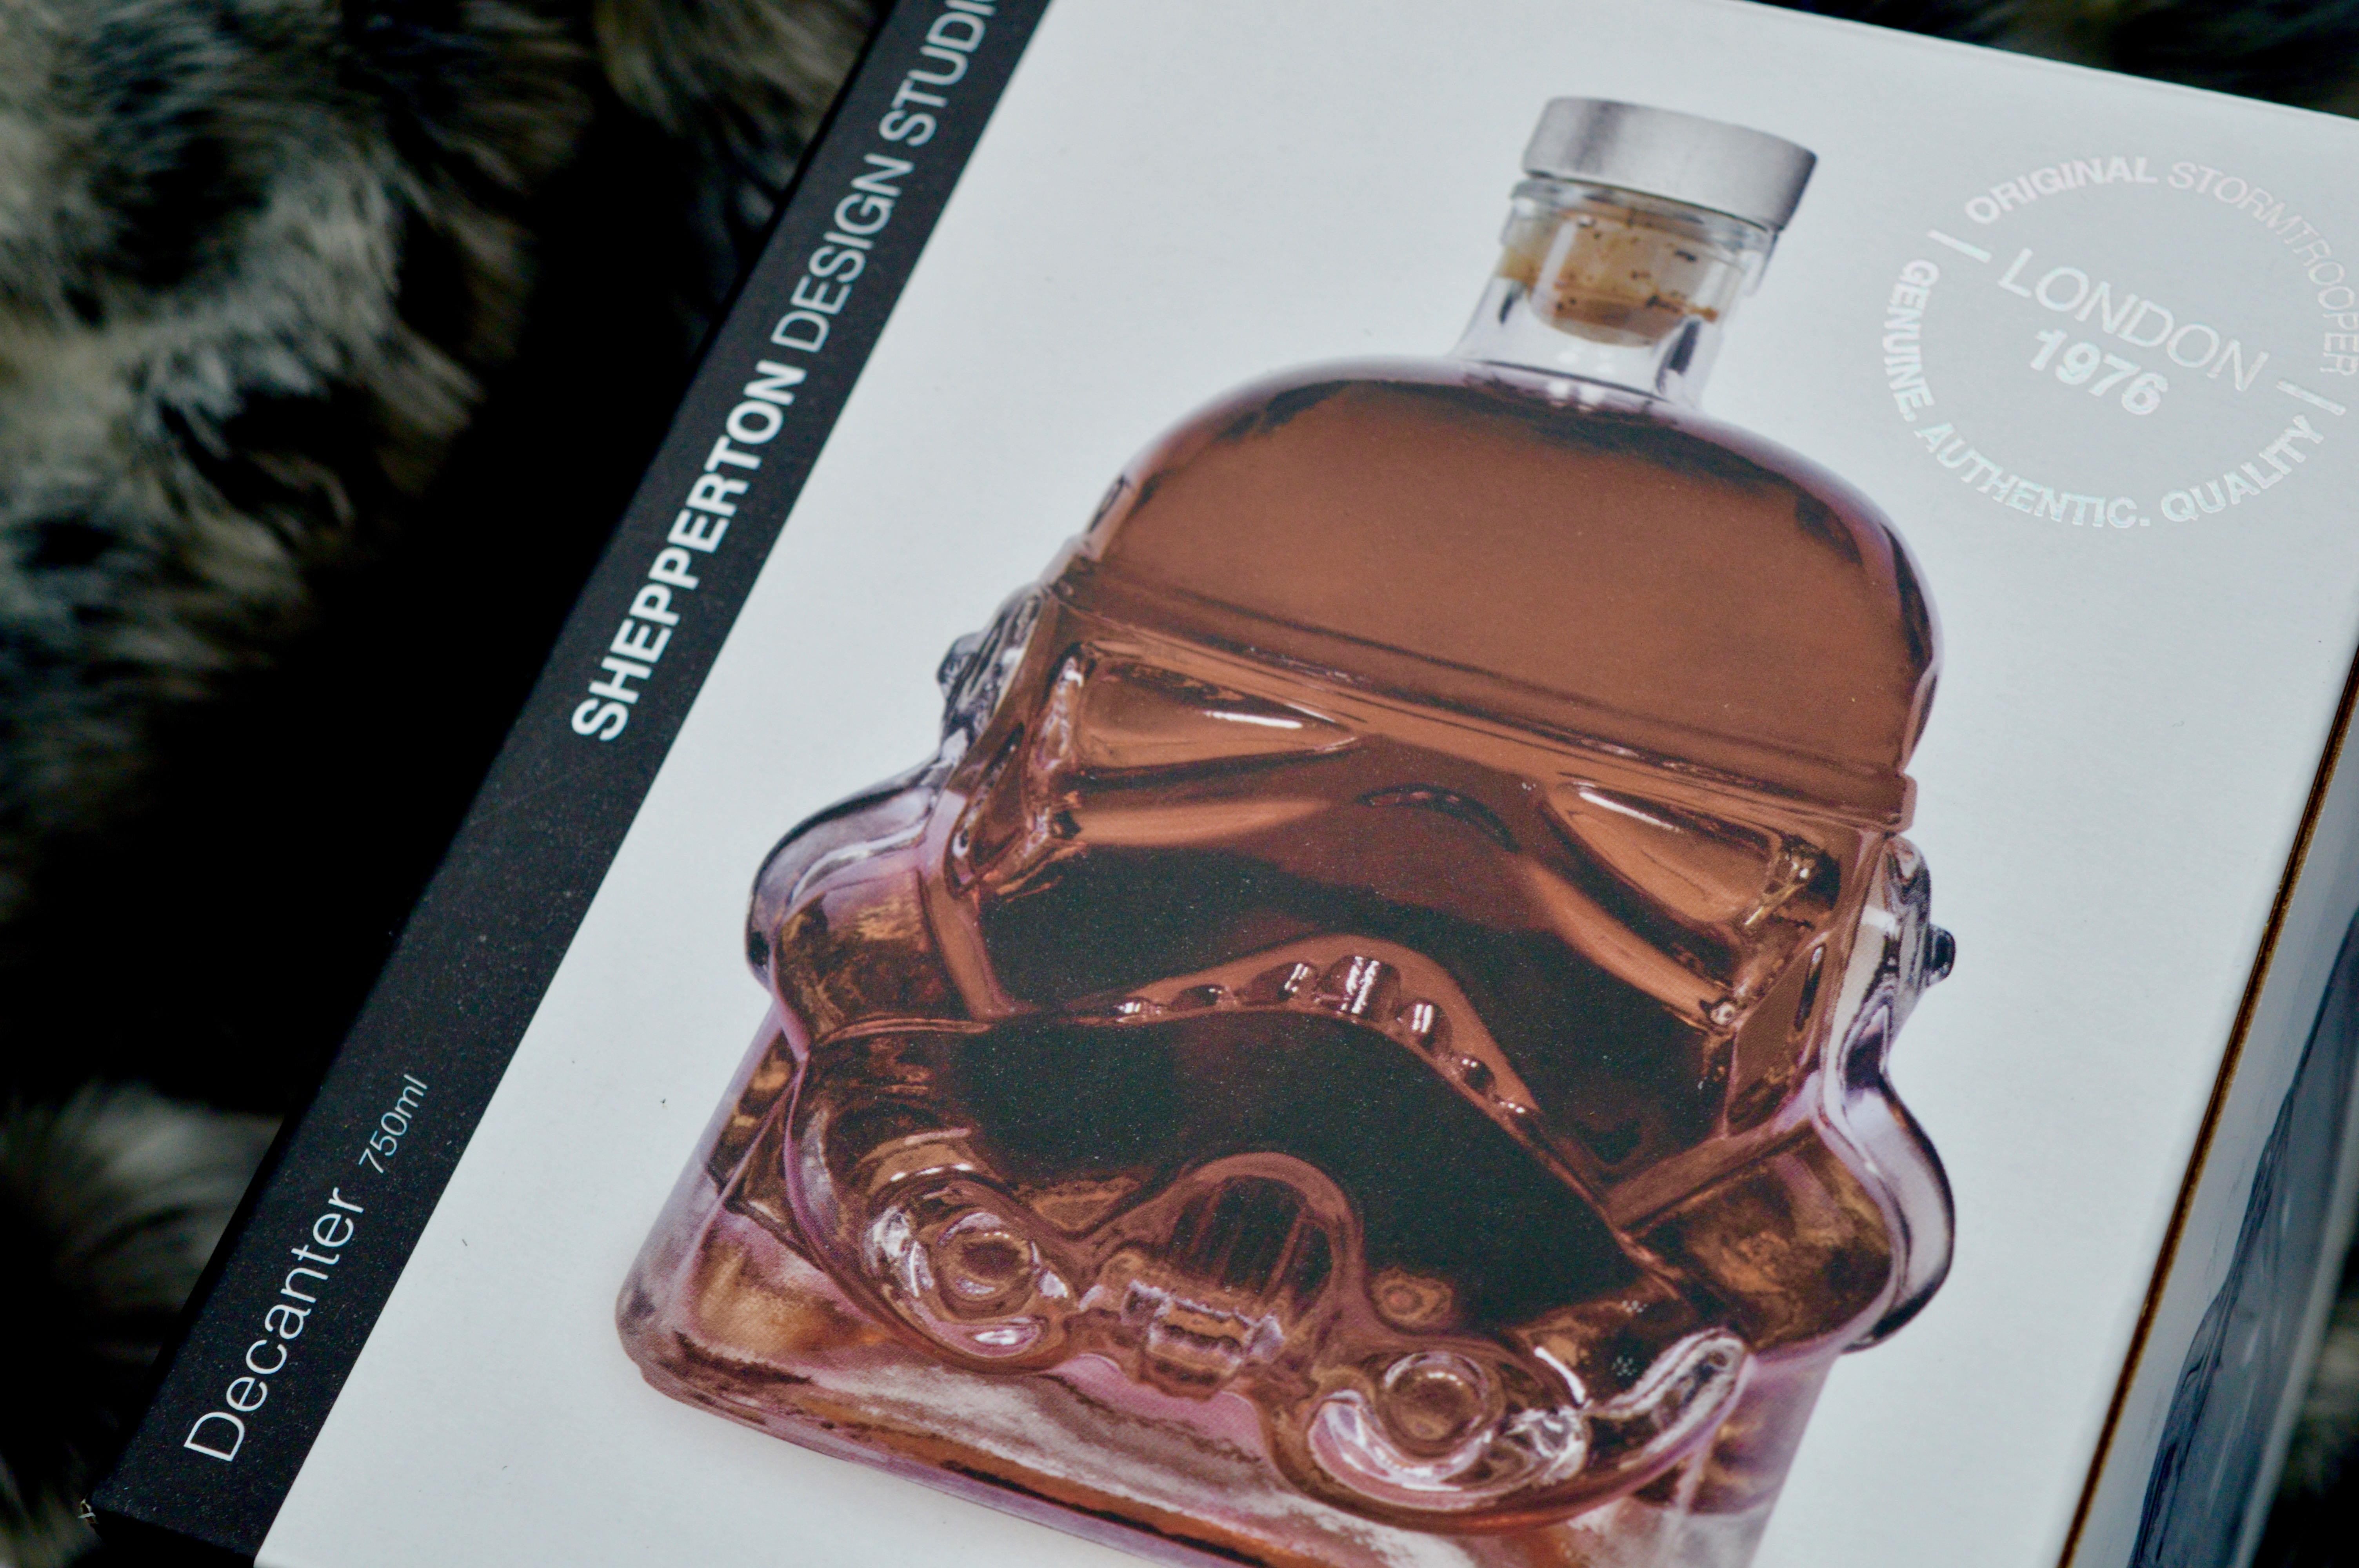 Star Wars Storm Trooper Decanter | What to buy the man who has everything | Man Cave | Elle Blonde Luxury Lifestyle Destination Blog